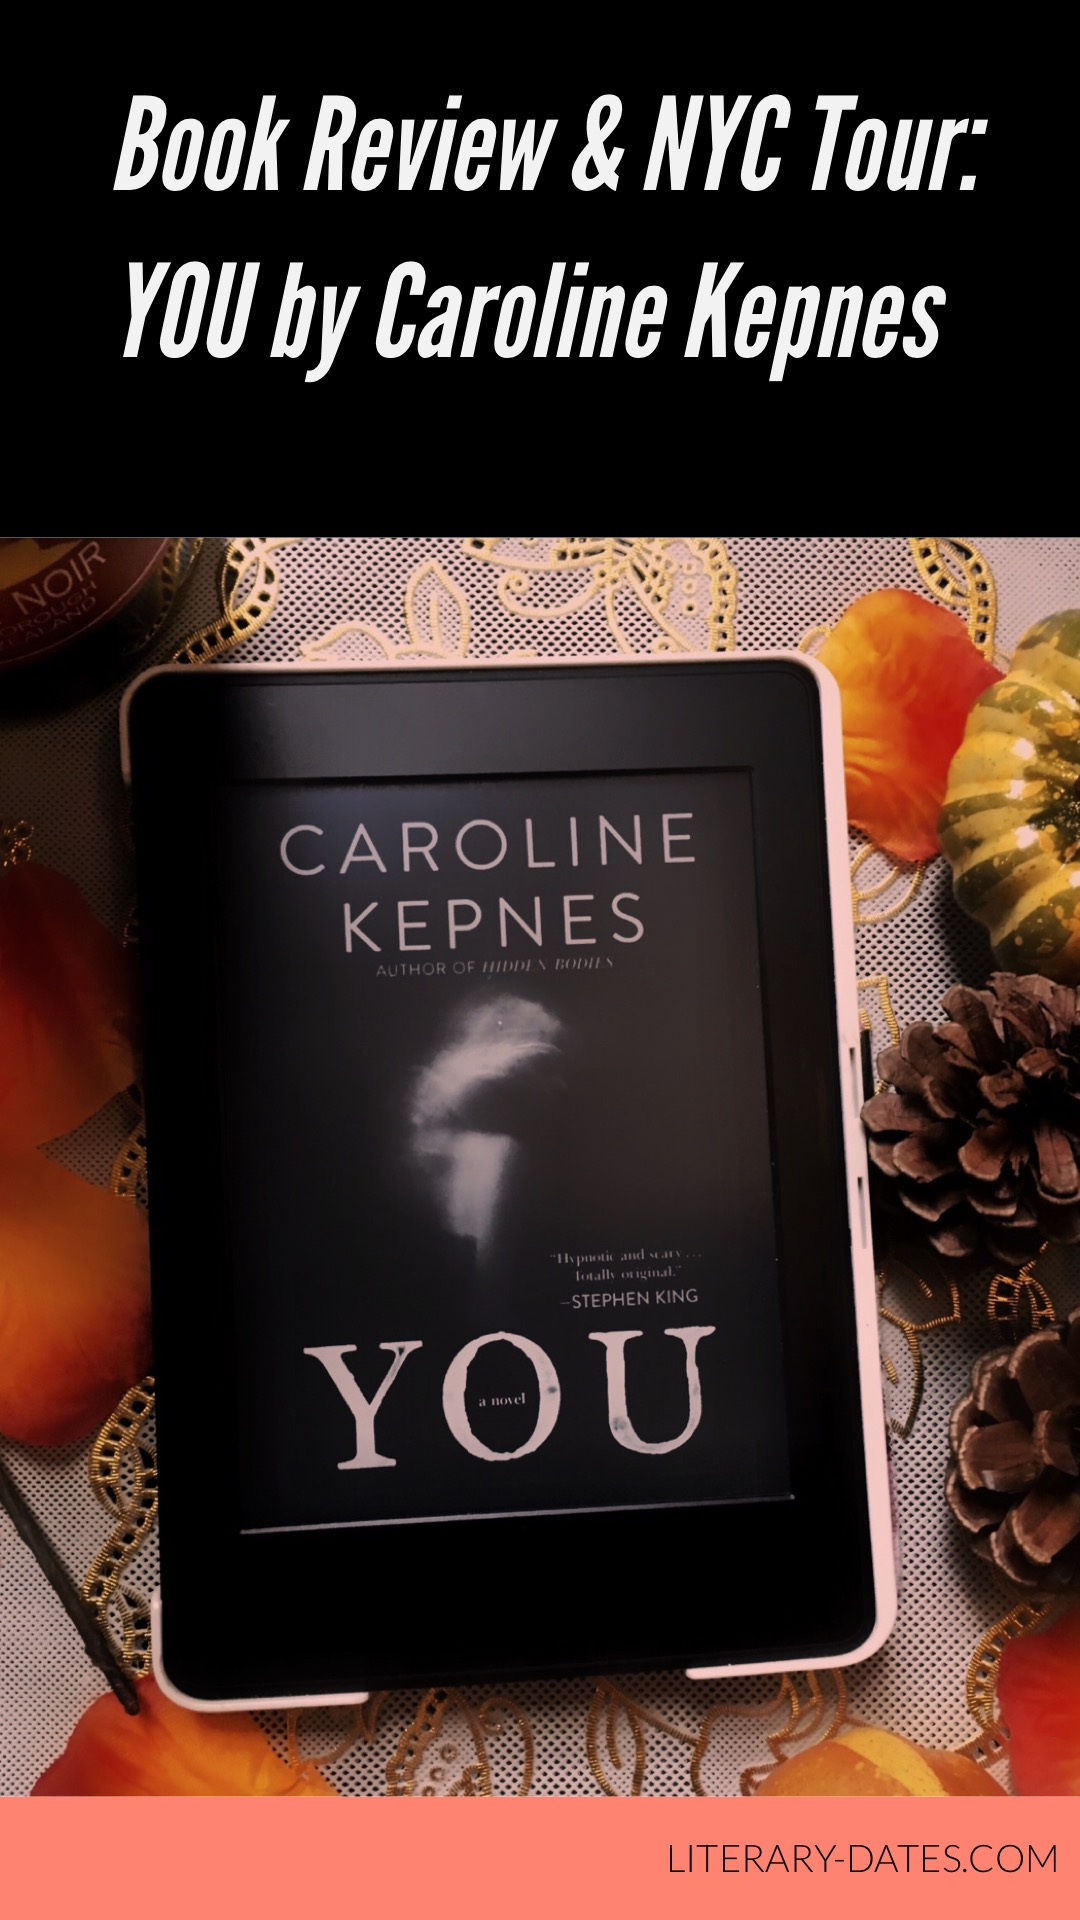 Book Review and NYC Tour: YOU by Caroline Kepnes